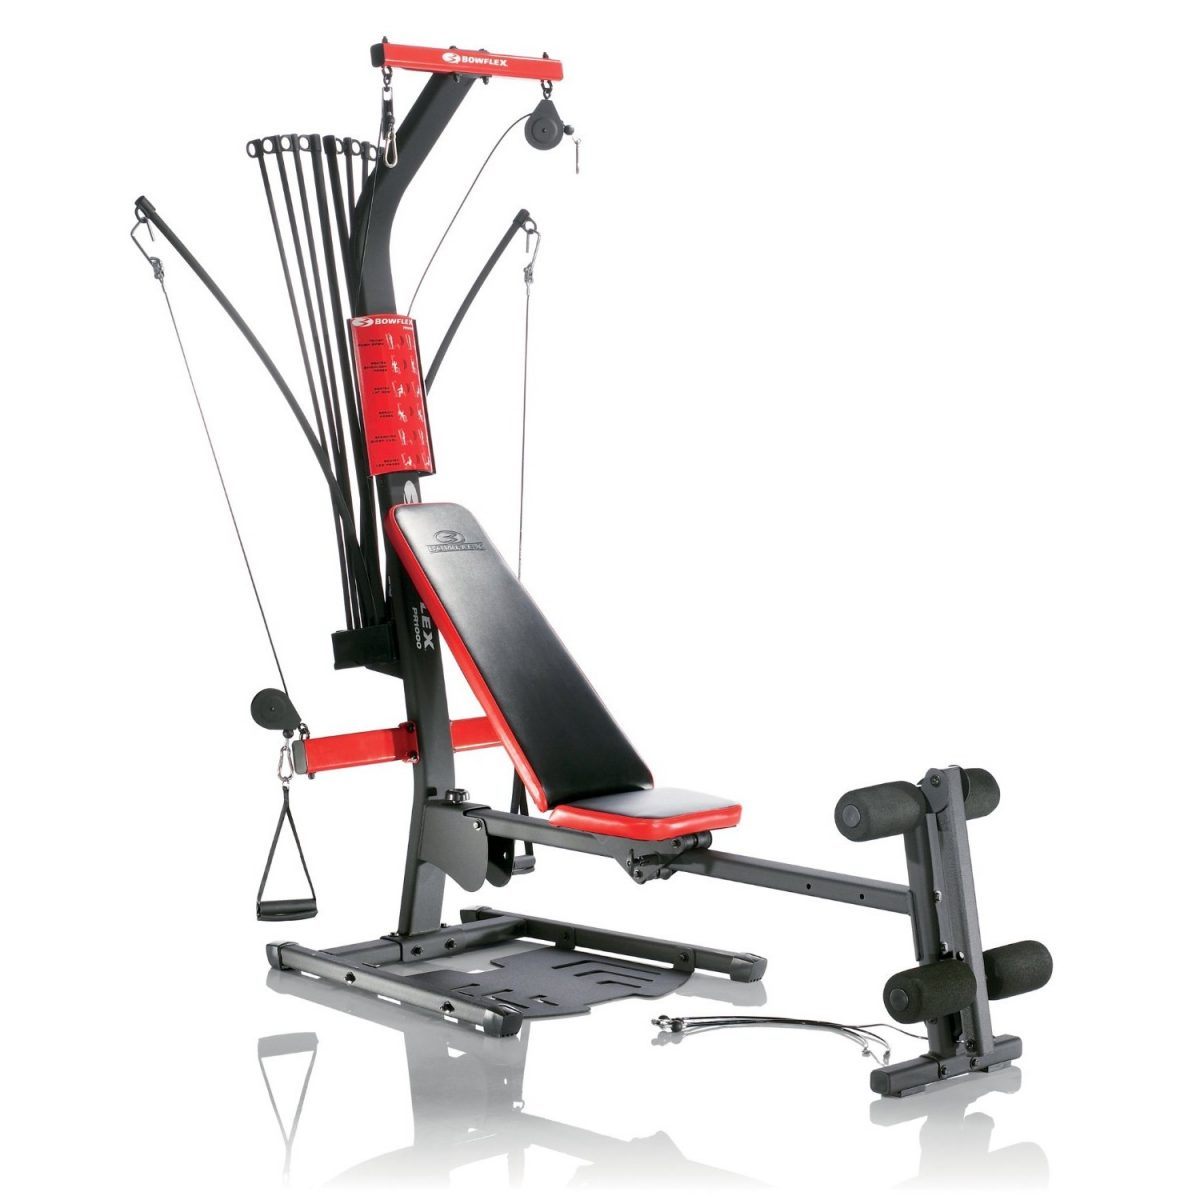 Product image of a new red and black Bowflex PR1000 home gym